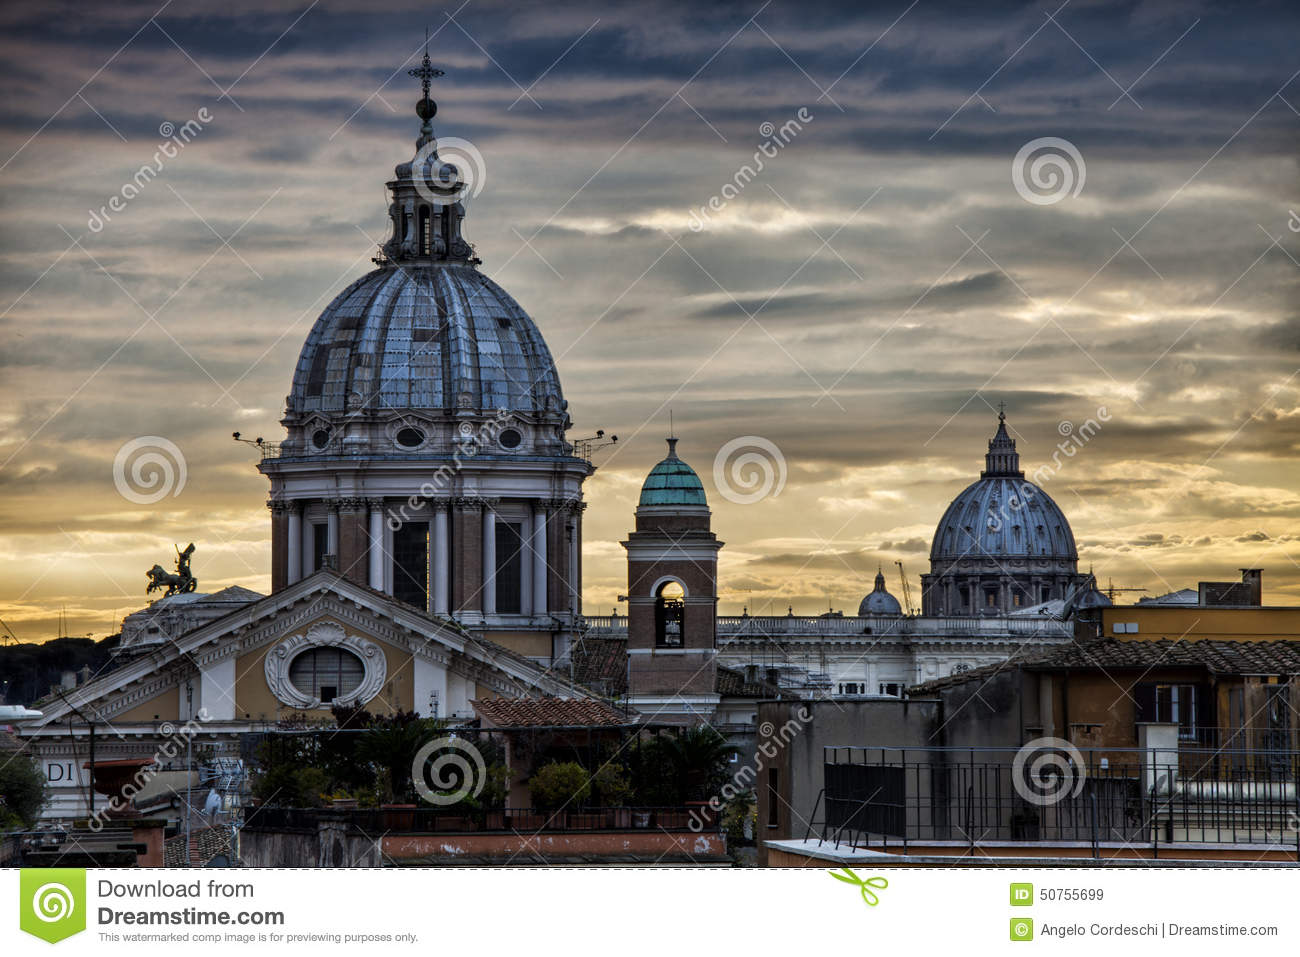 Skyline Rome, domes and monuments. Sunset. Italy